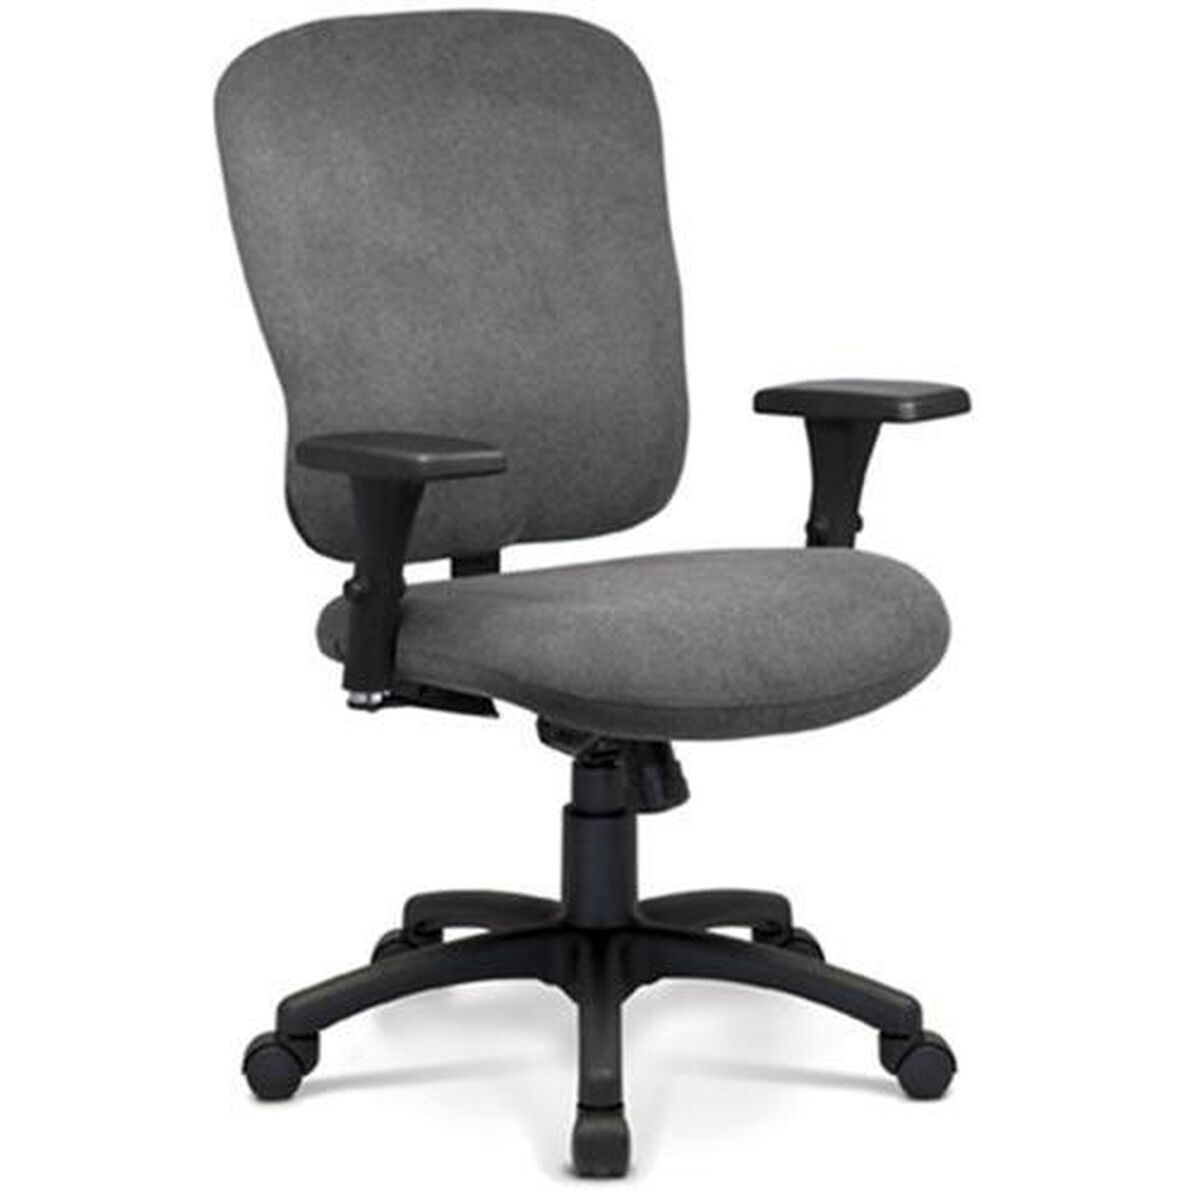 Art Design International : Art design international sensaflex task chair with high